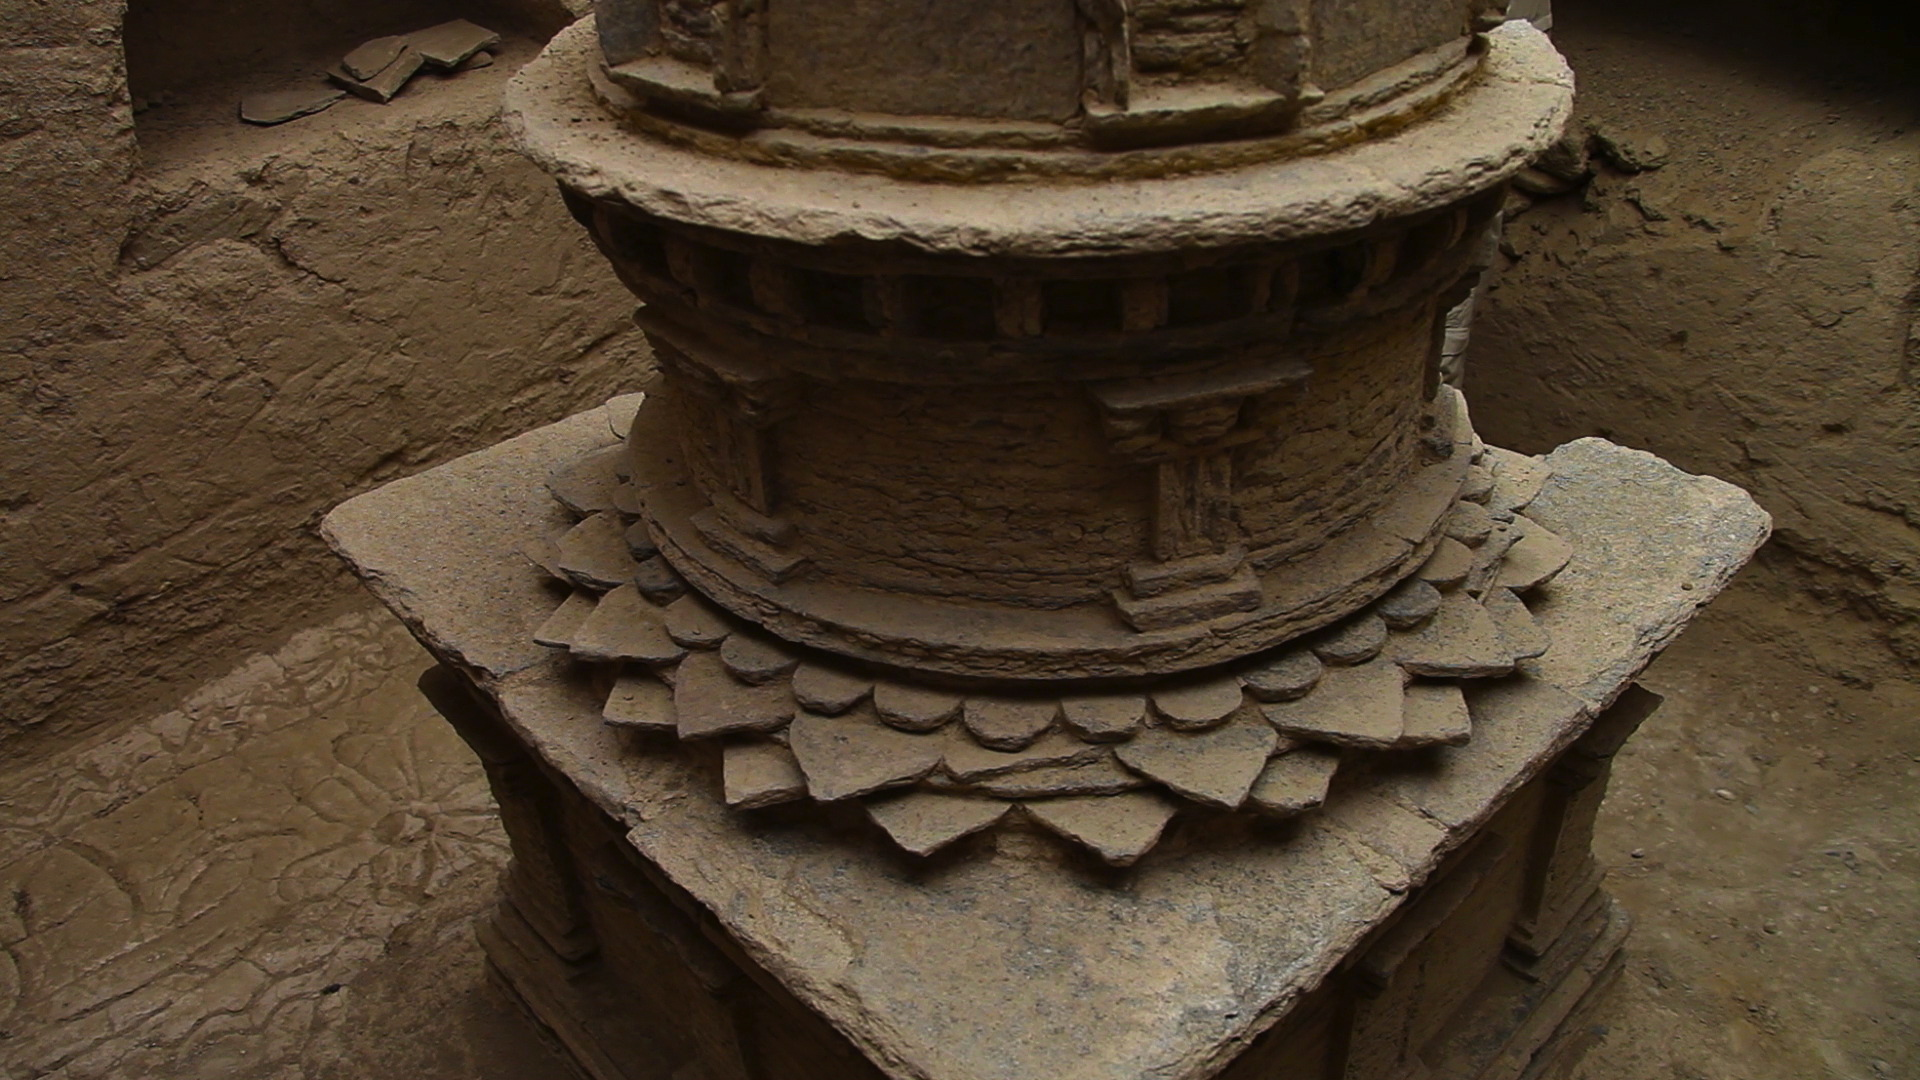 A stunning Buddhist stupa discovered at the site.